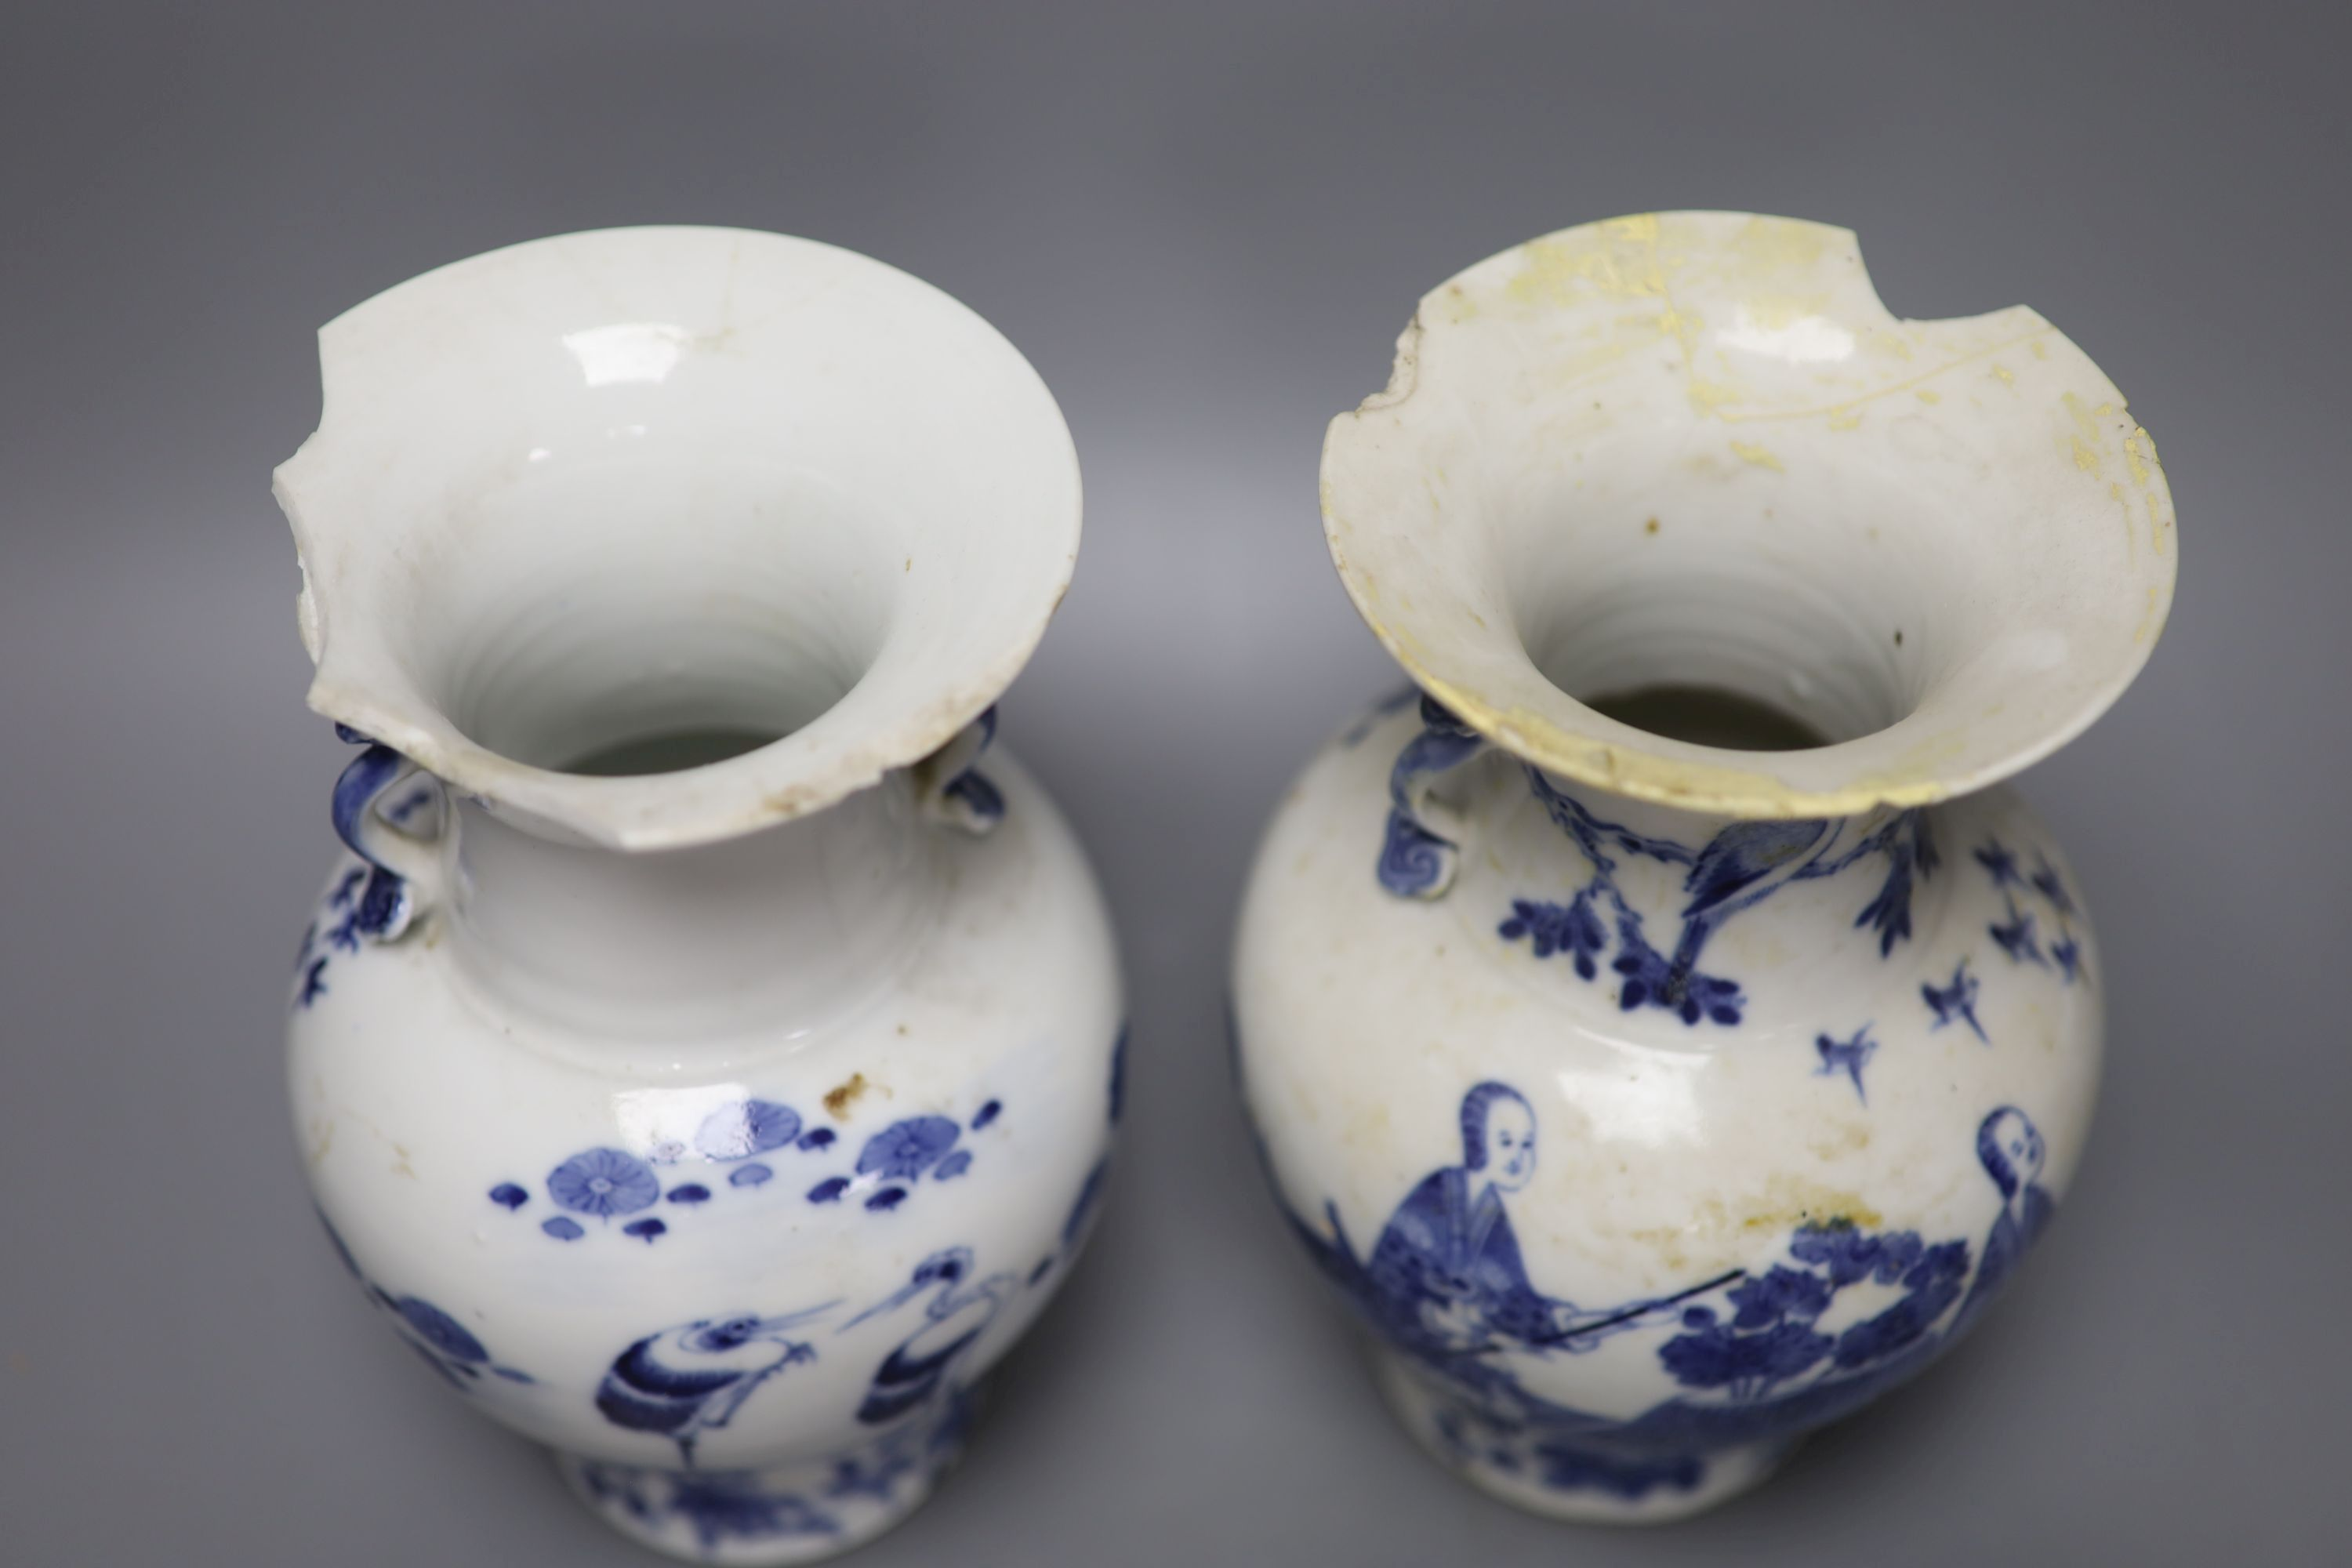 A pair of 19th century Chinese blue and white vases (a.f.), 23cm high - Image 3 of 6